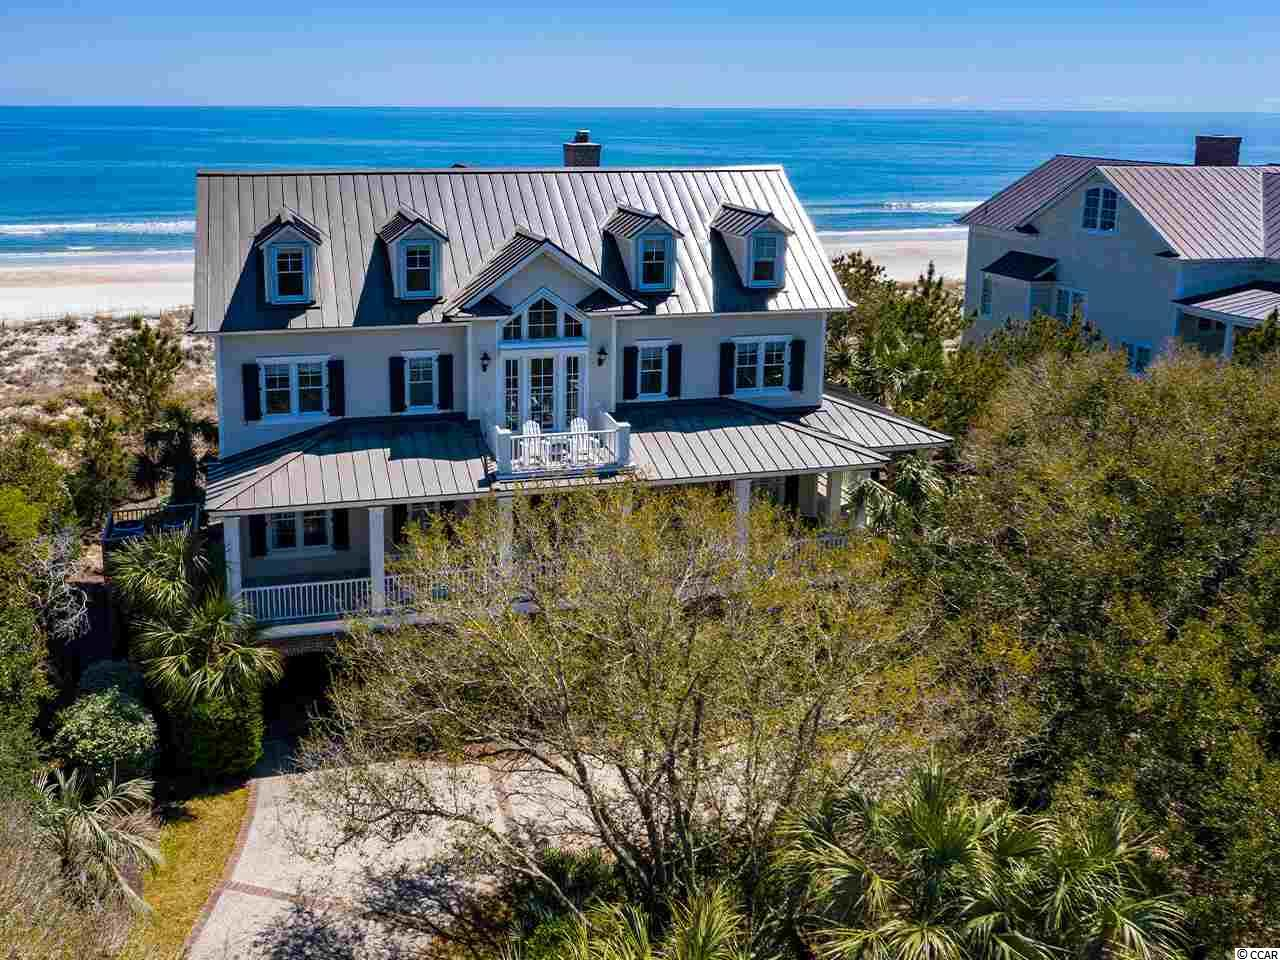 727 Beach Bridge Rd., Pawleys Island, South Carolina